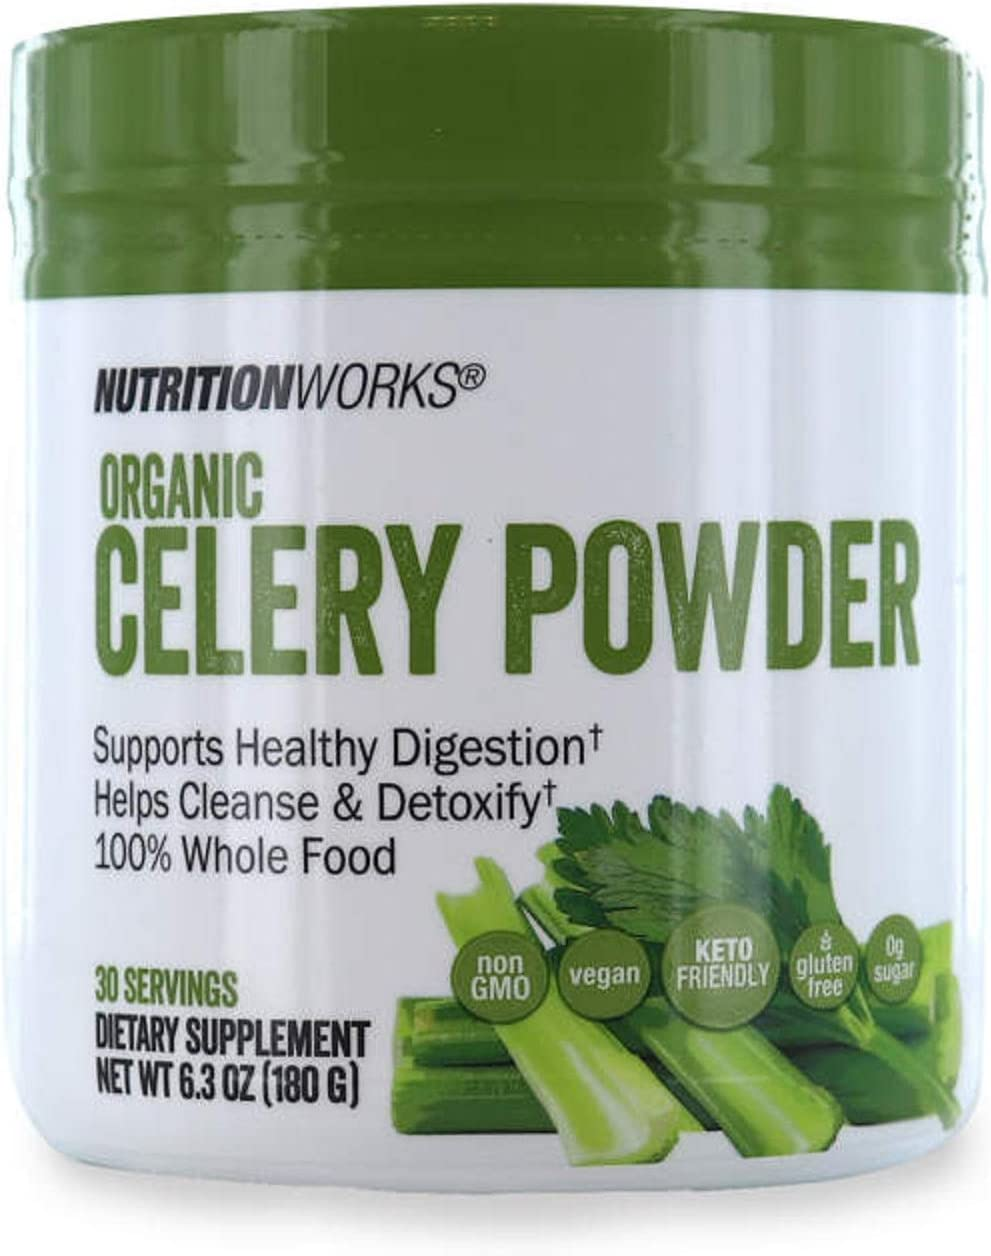 Nutrition Works Organic Celery Powder 100% Whole Food Dietary Suplement - 6.3 oz (180 g) - 30 Servings